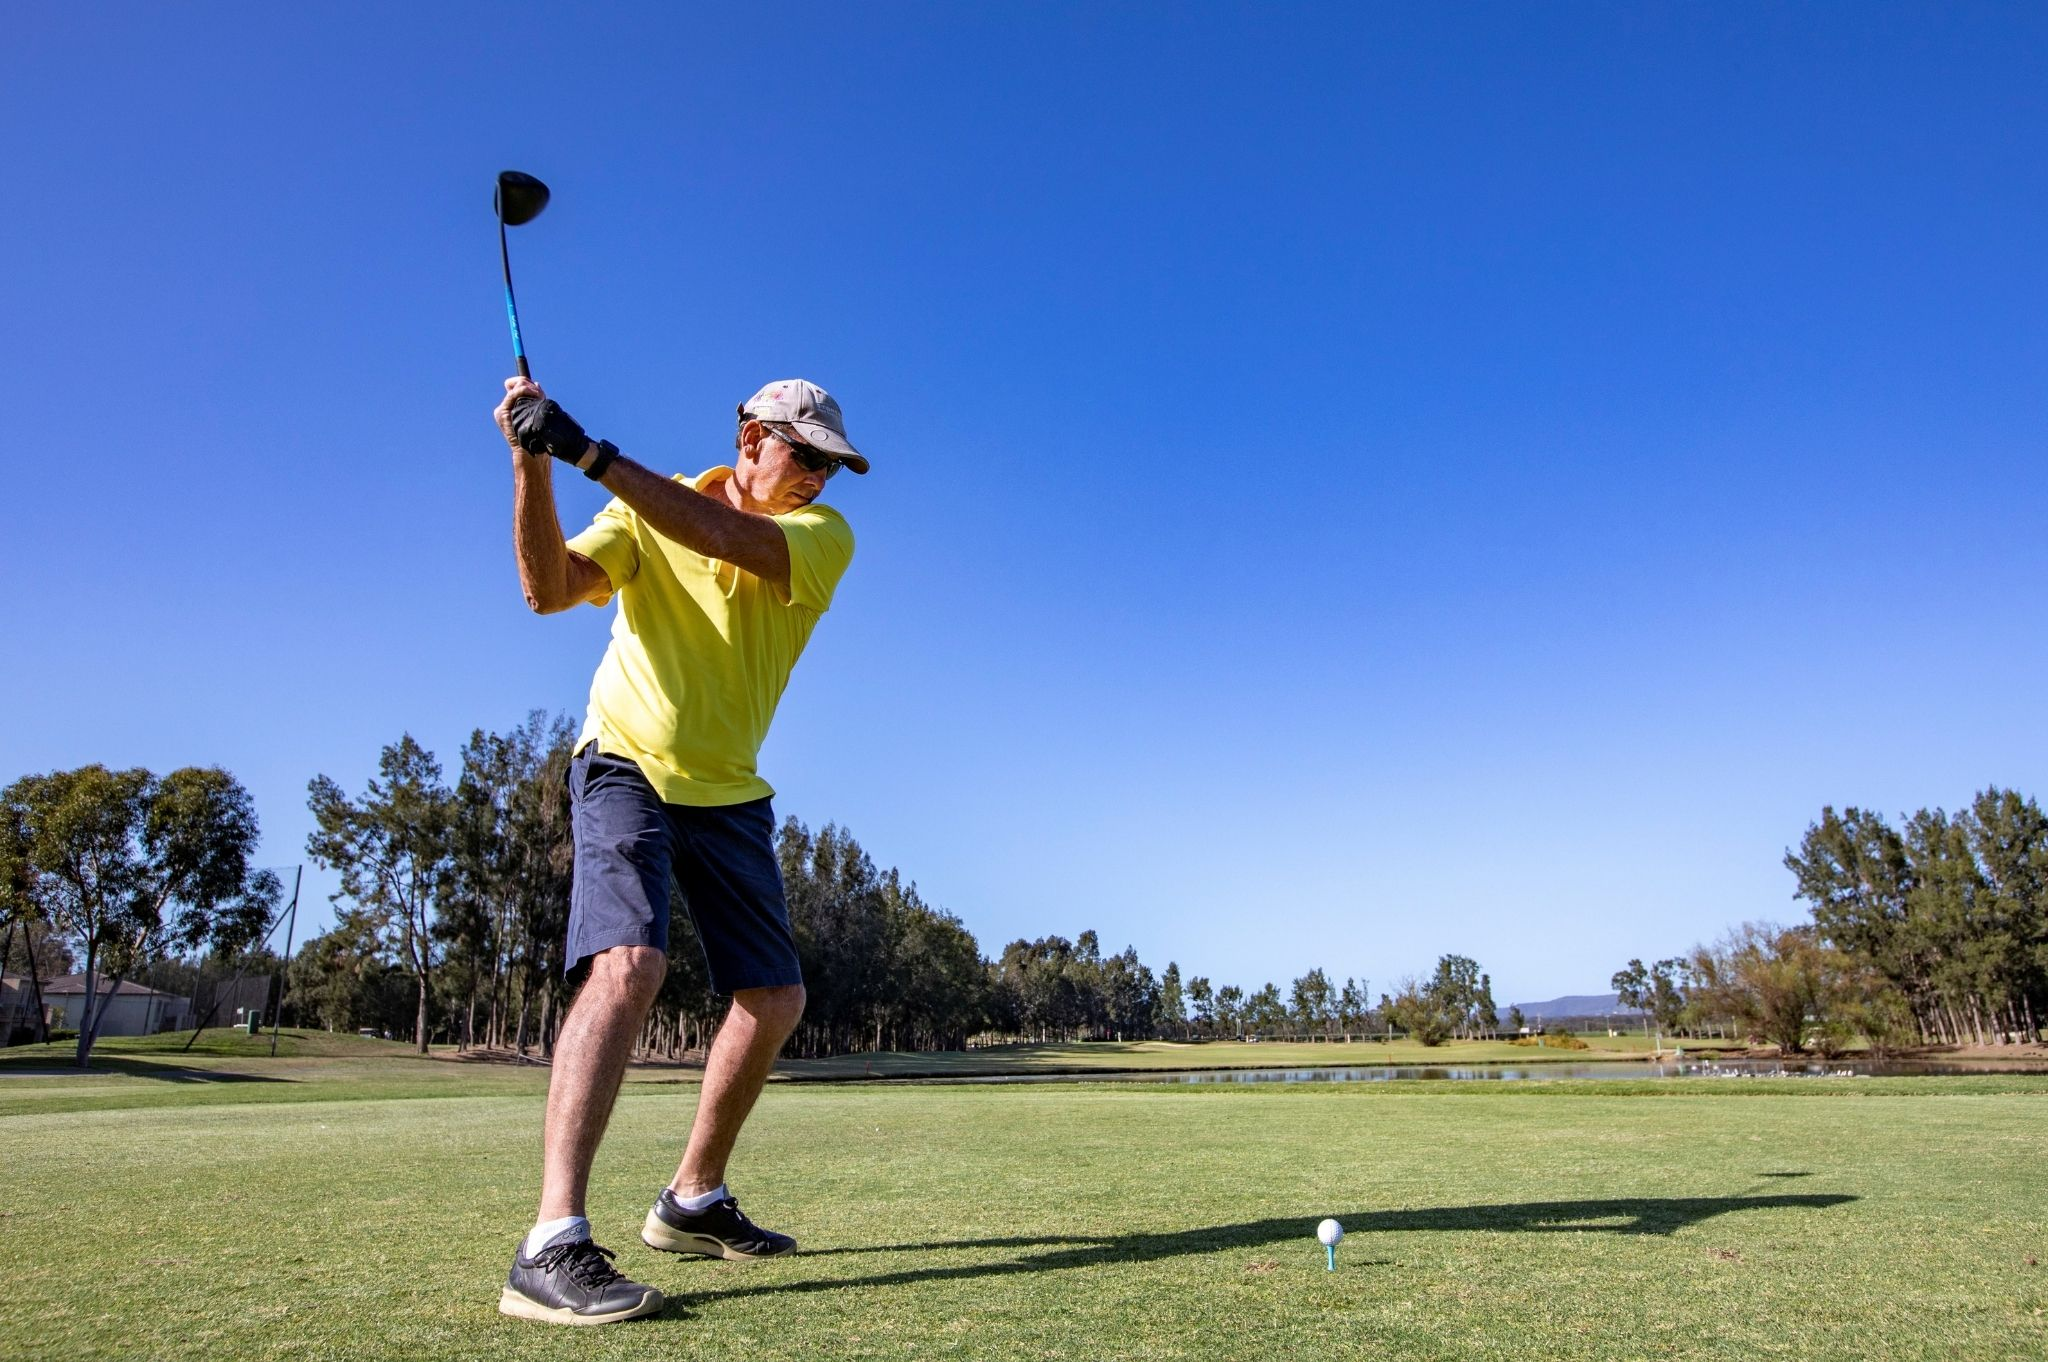 Image of a man on a golf course in NSW